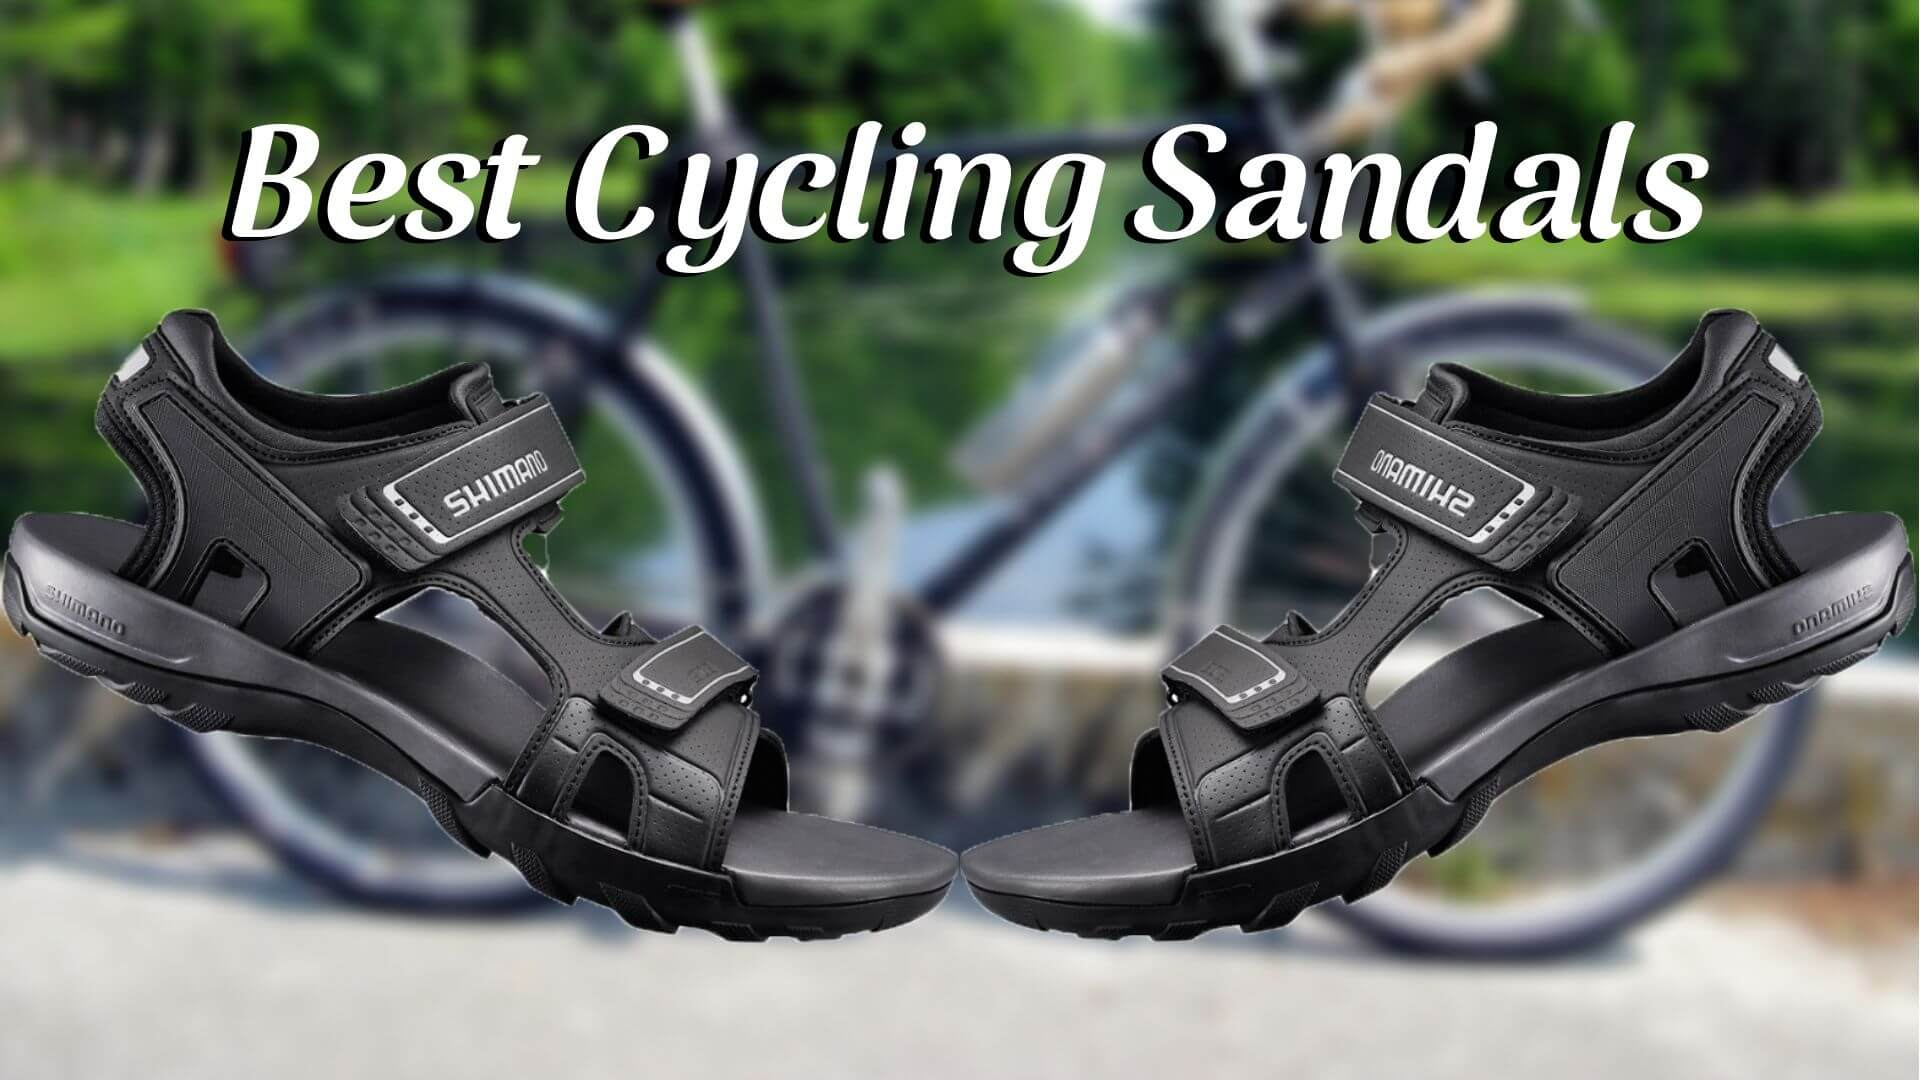 Best Cycling Sandals - Top Cycling